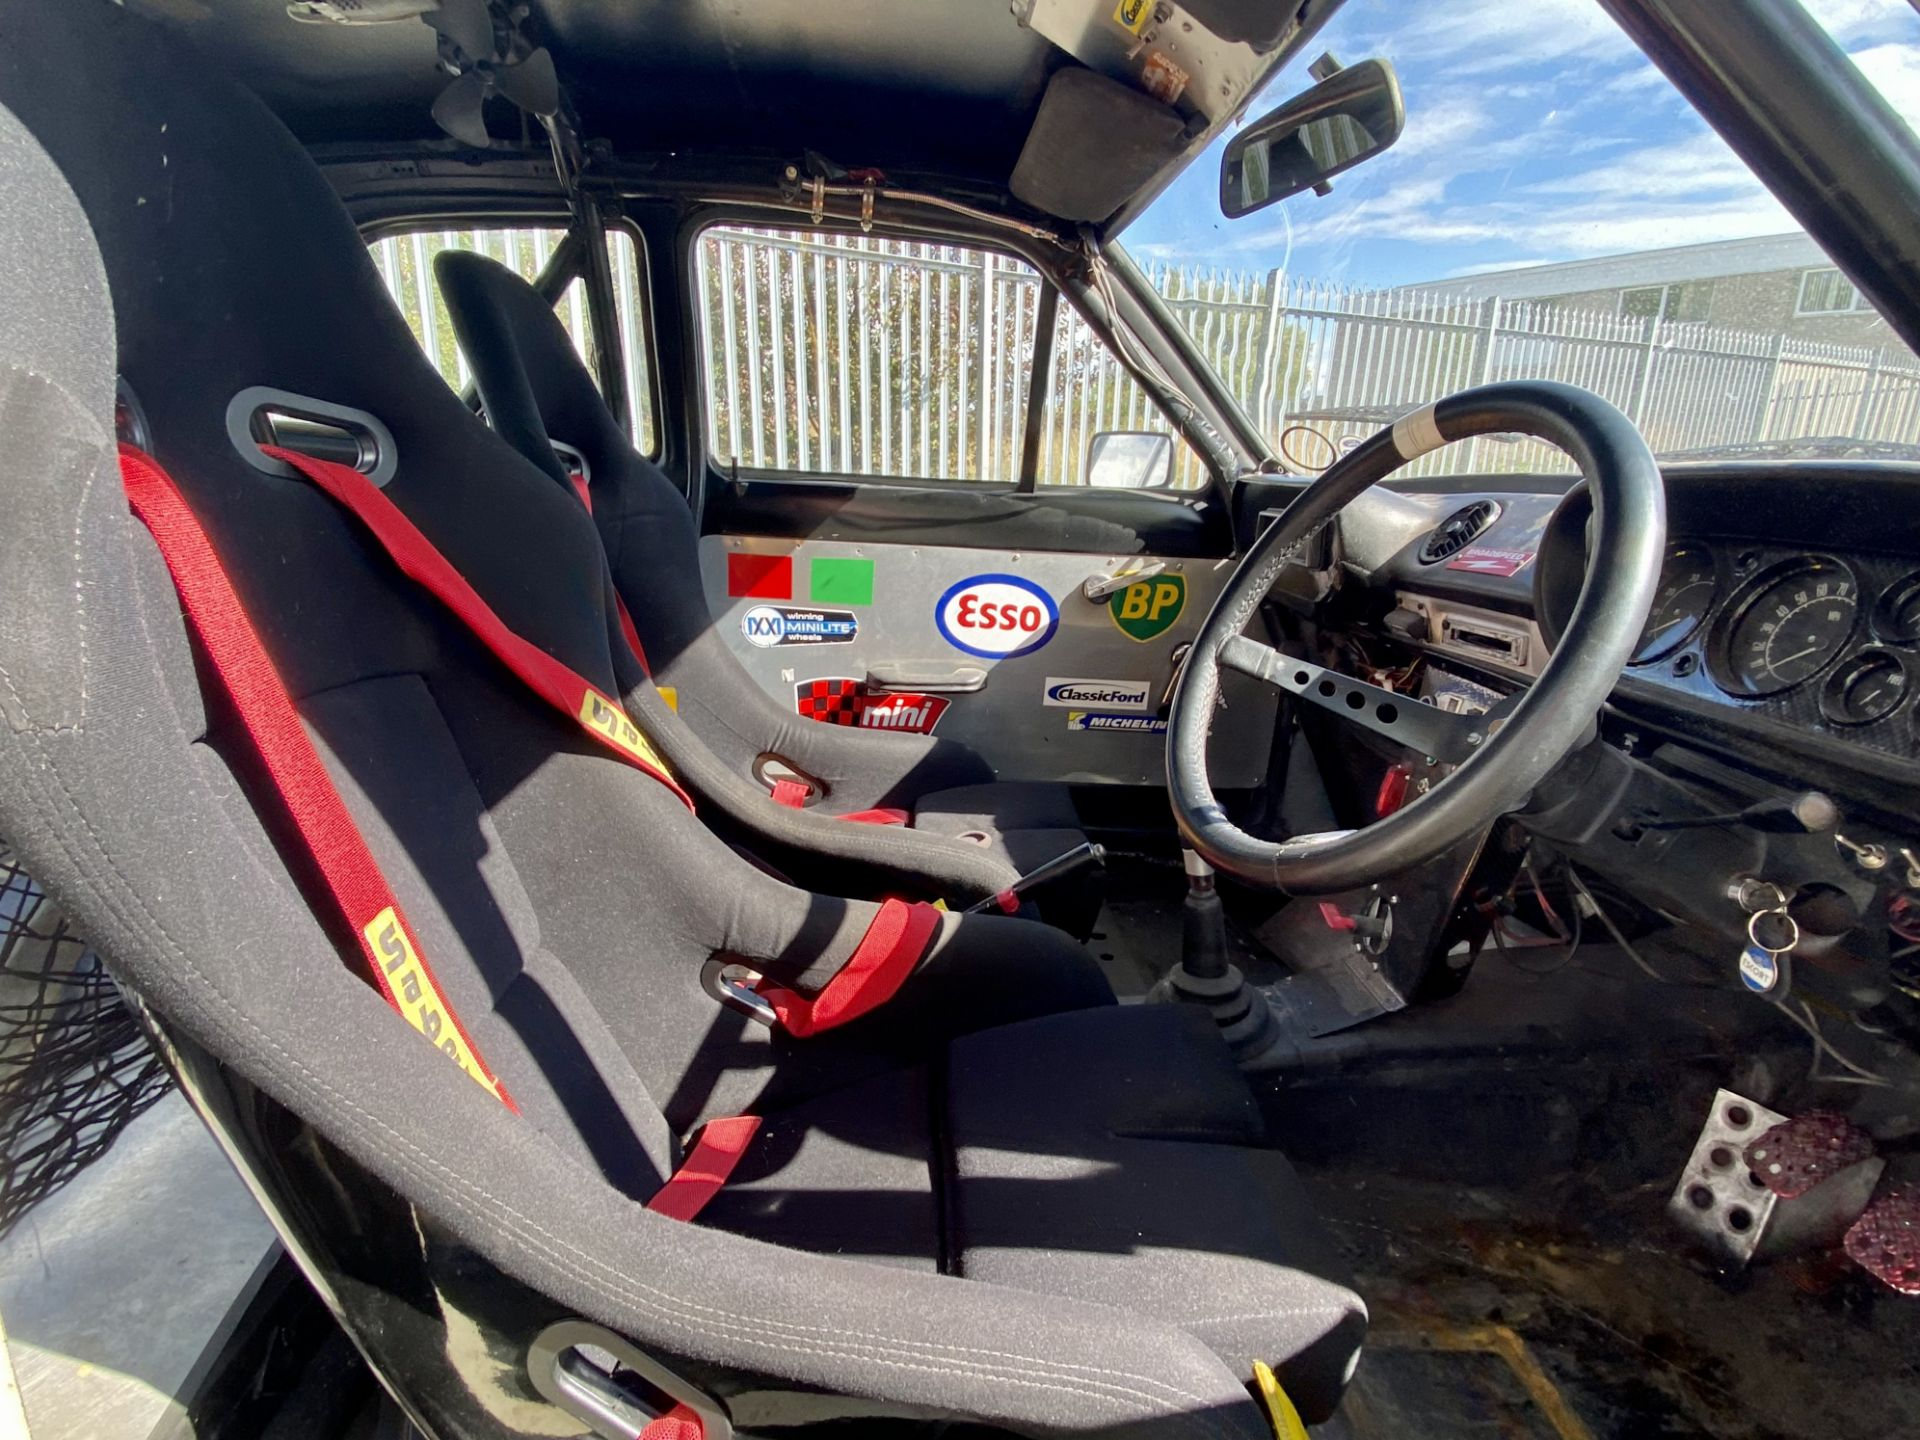 Ford Escort Mexico - Image 33 of 51